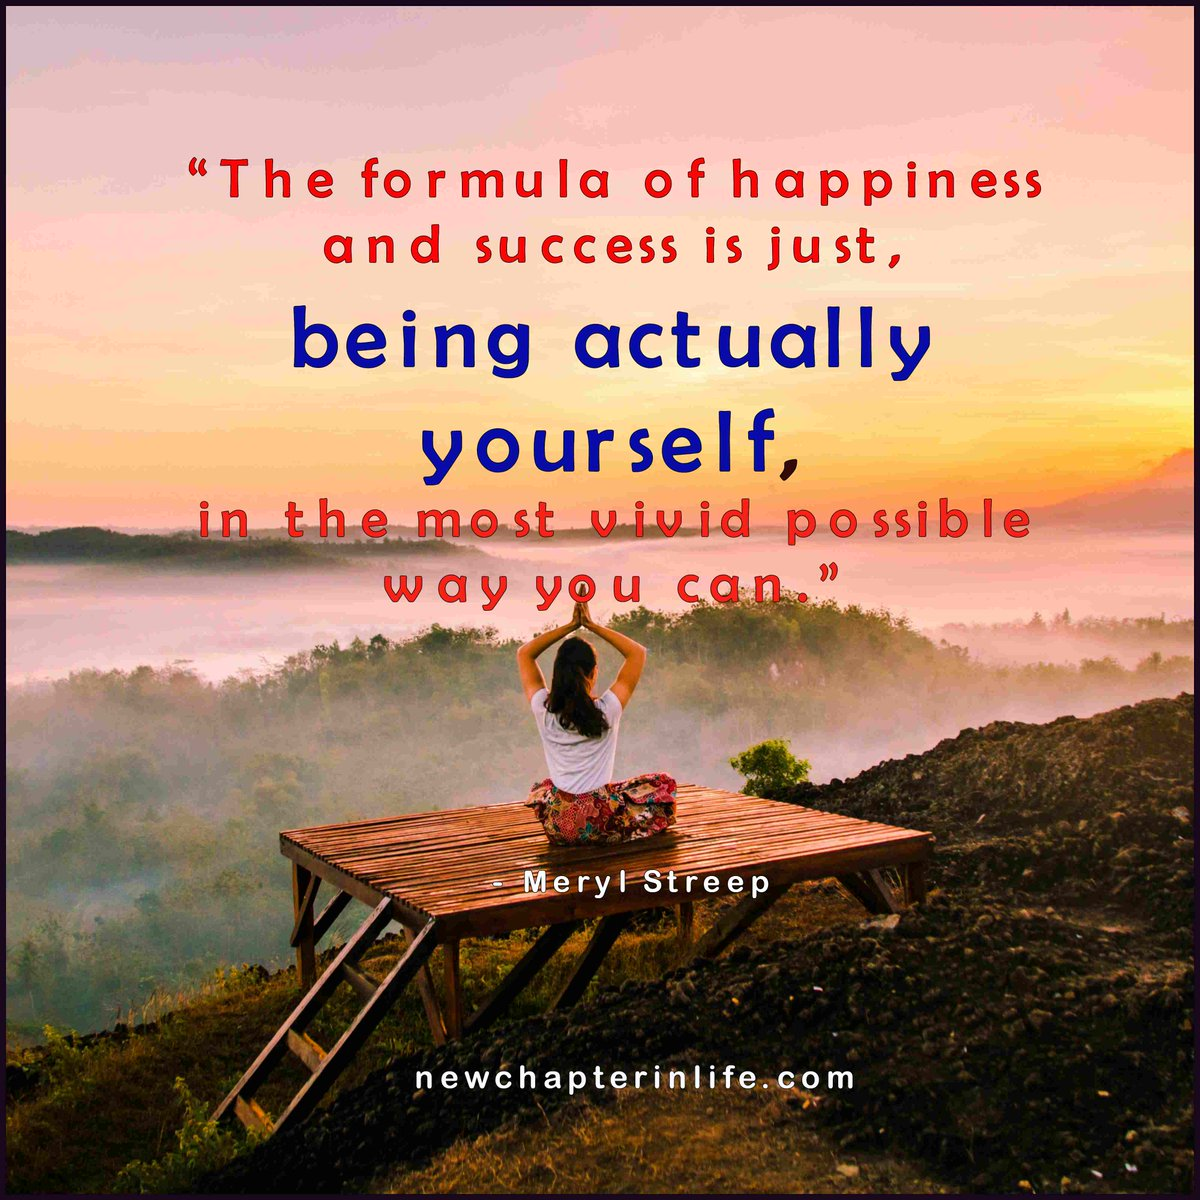 Just be yourself. #WednesdayWisdom #MotivationalQuote <br>http://pic.twitter.com/QbnANRJmaM